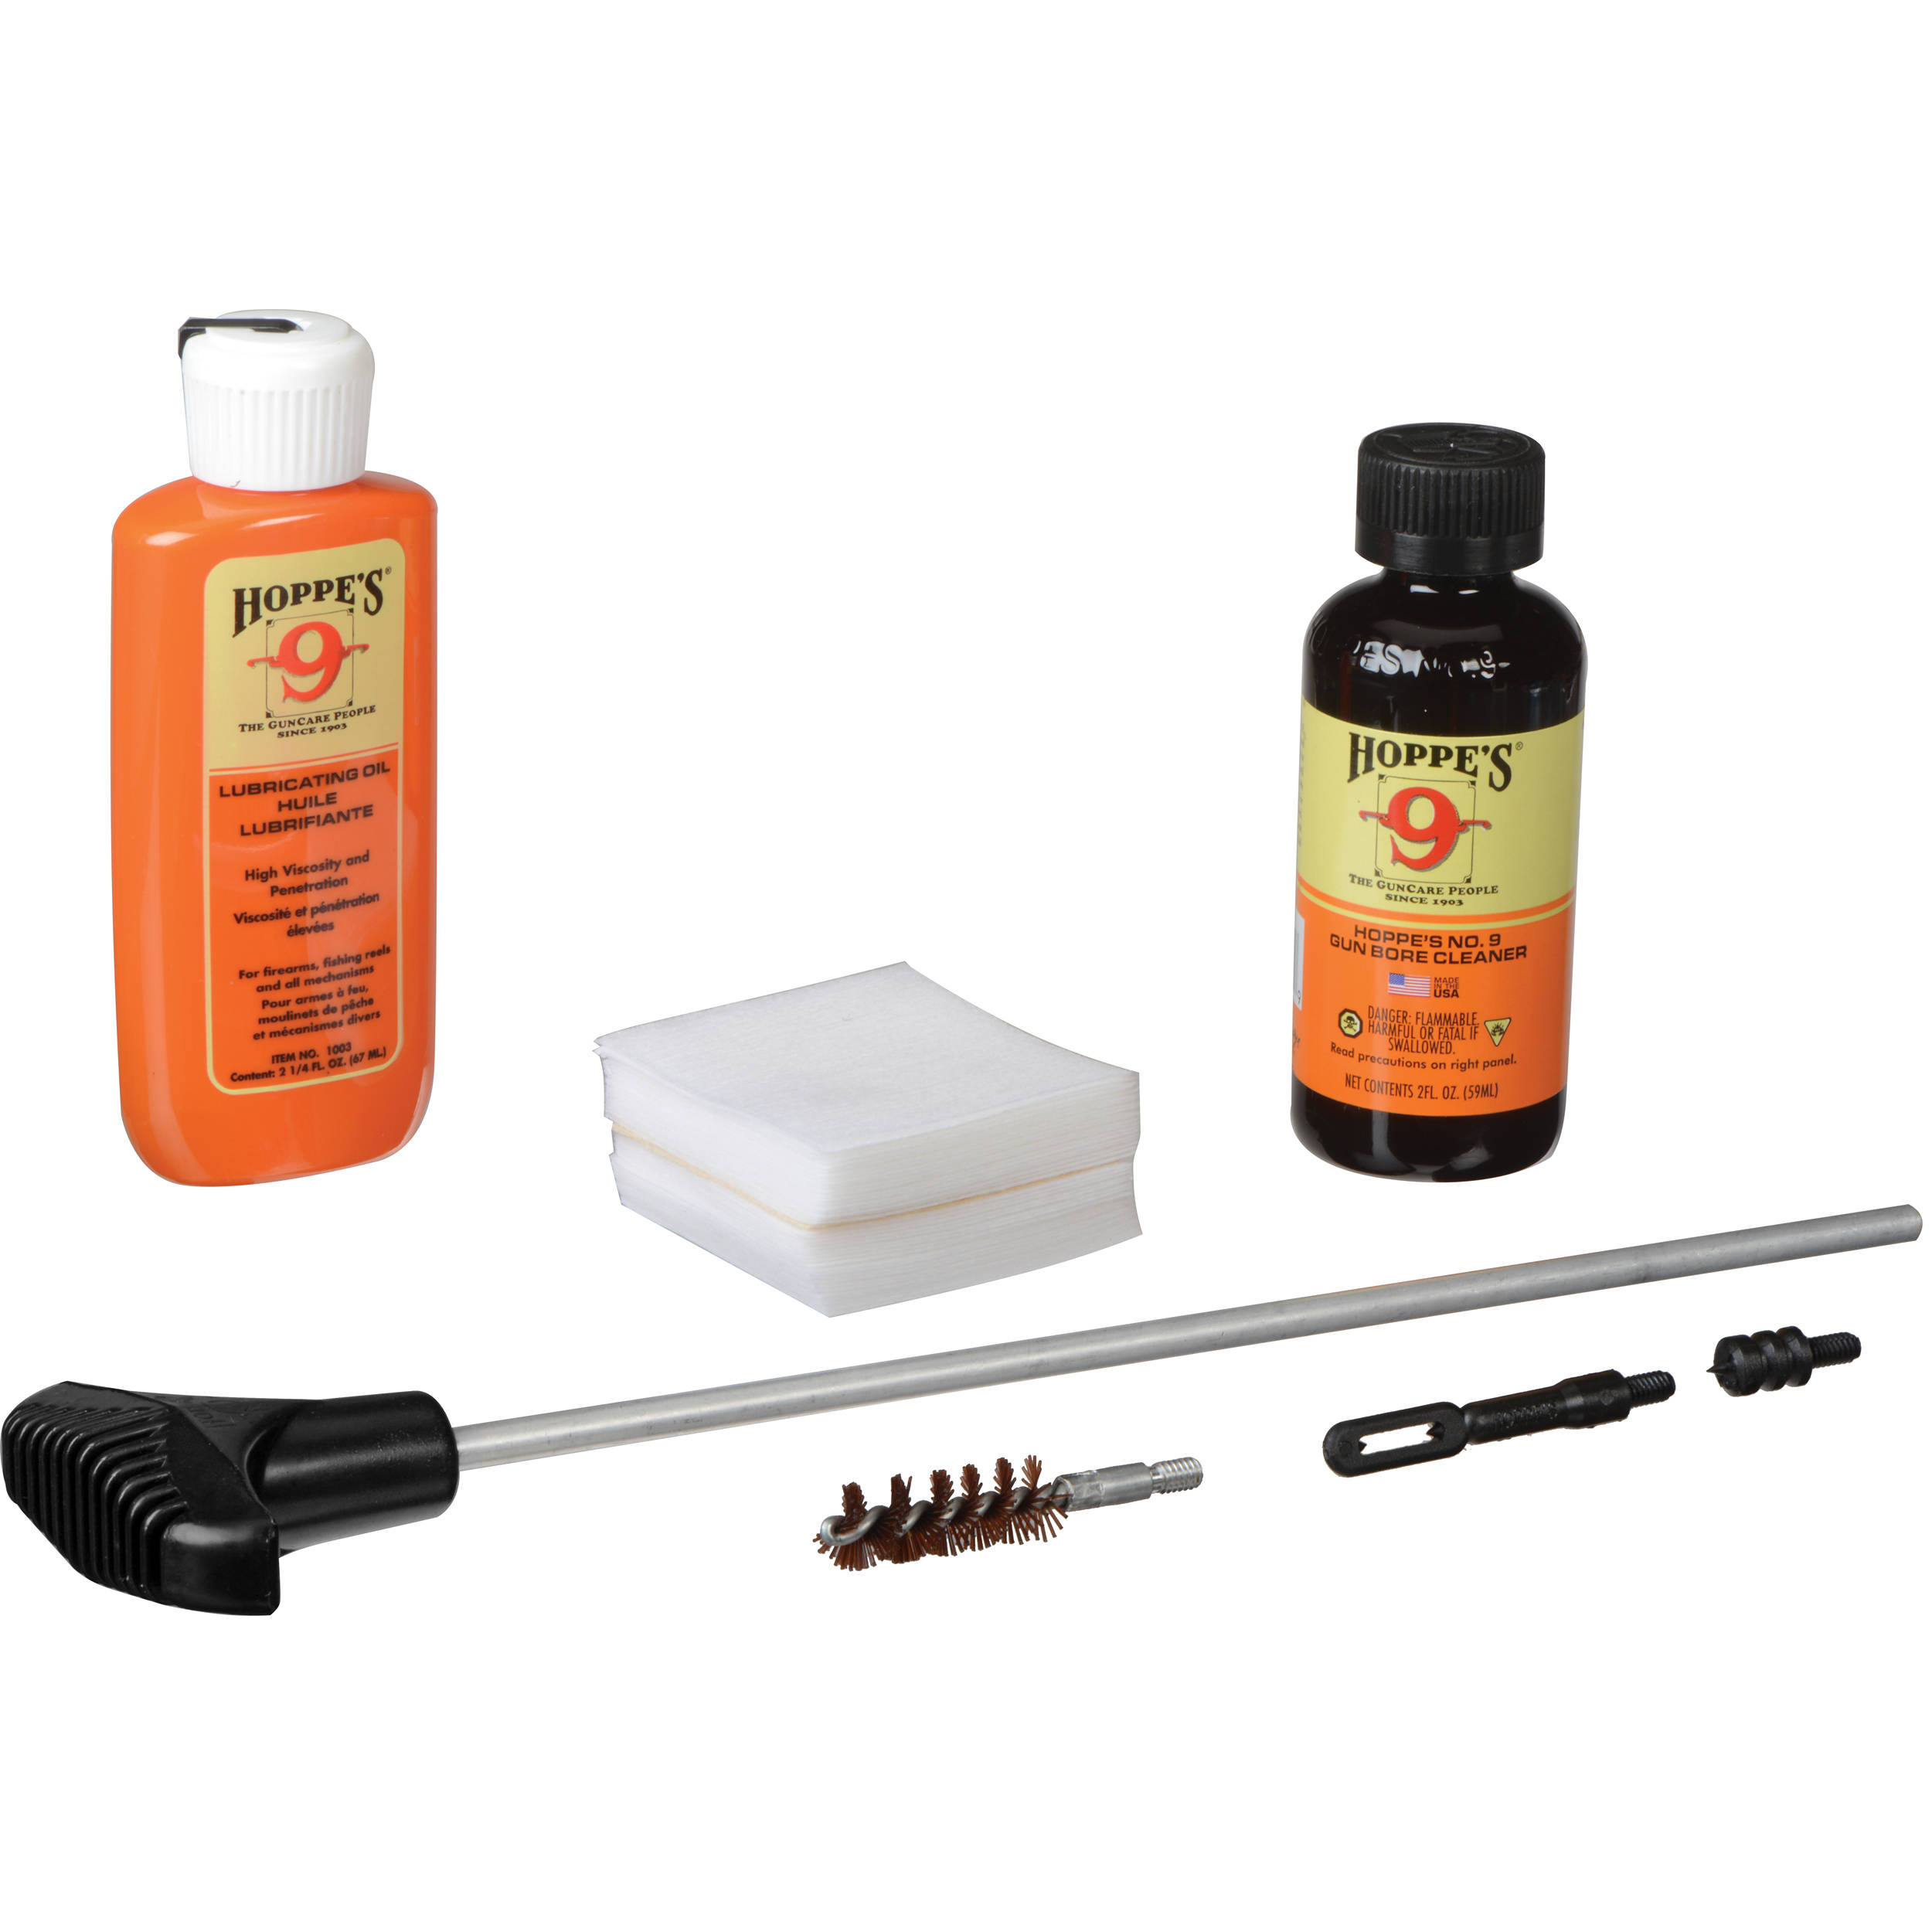 Hoppes Pistol Cleaning Kit with Aluminum Rod for  38,  357, and 9mm (Box)